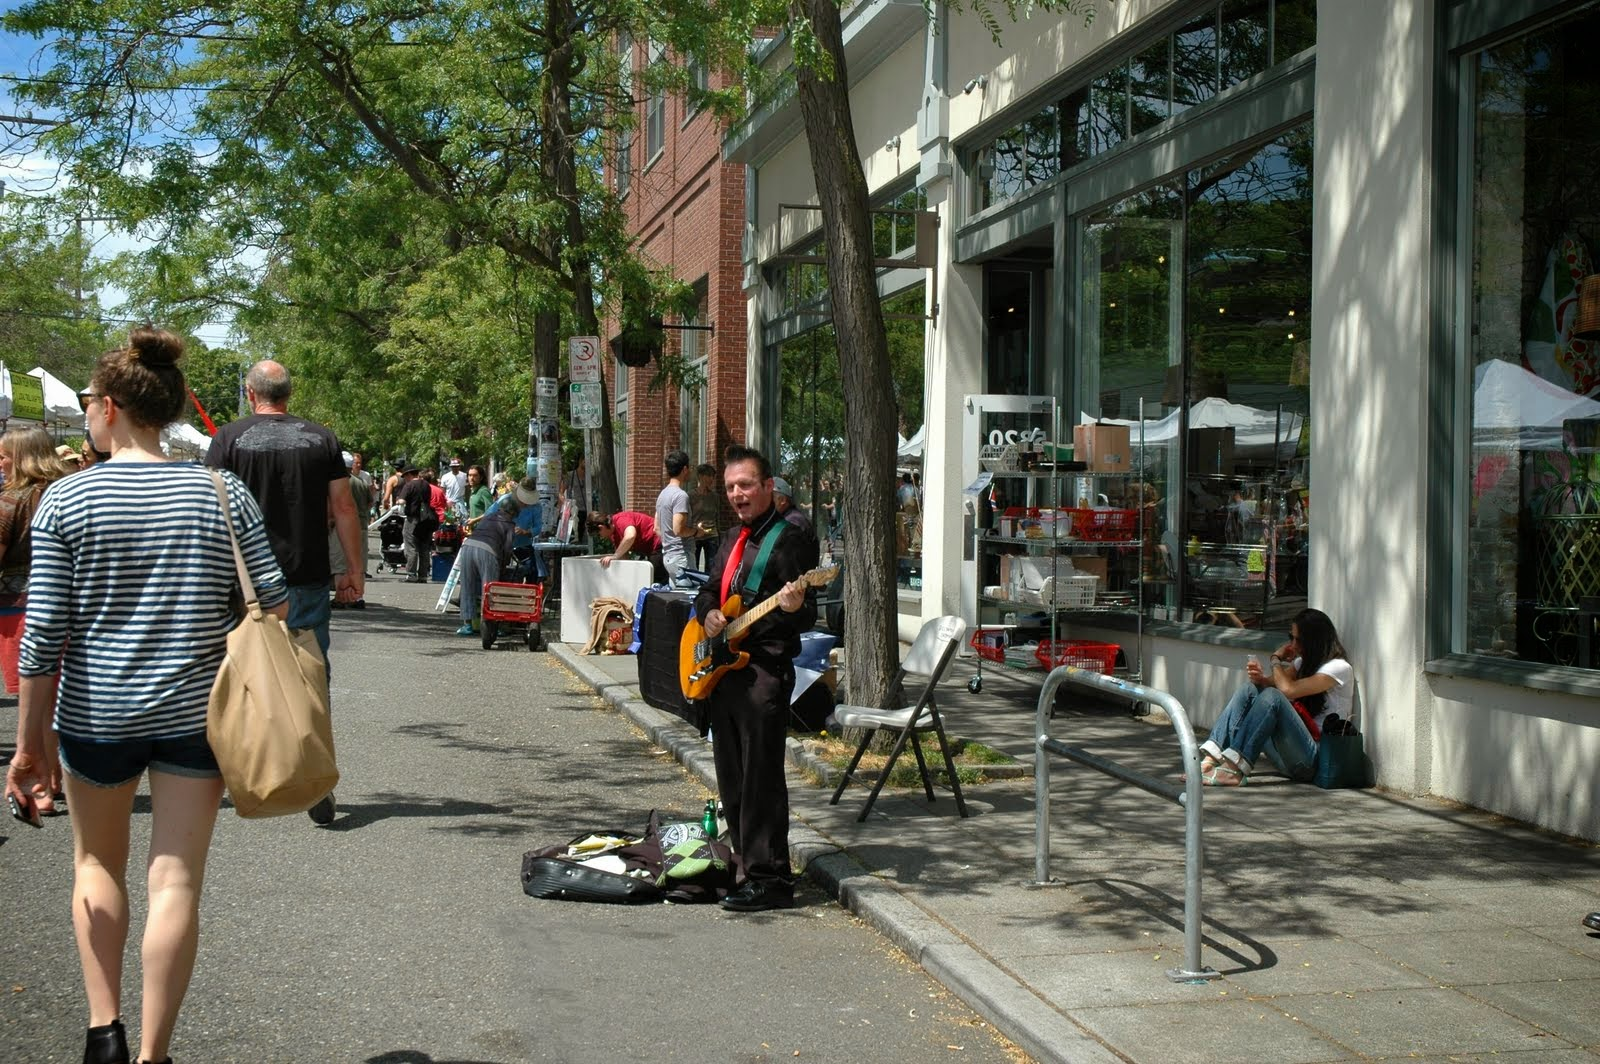 Buskers line the streets and provide background music for focused shoppers. Those with extra time linger to enjoy the performances.